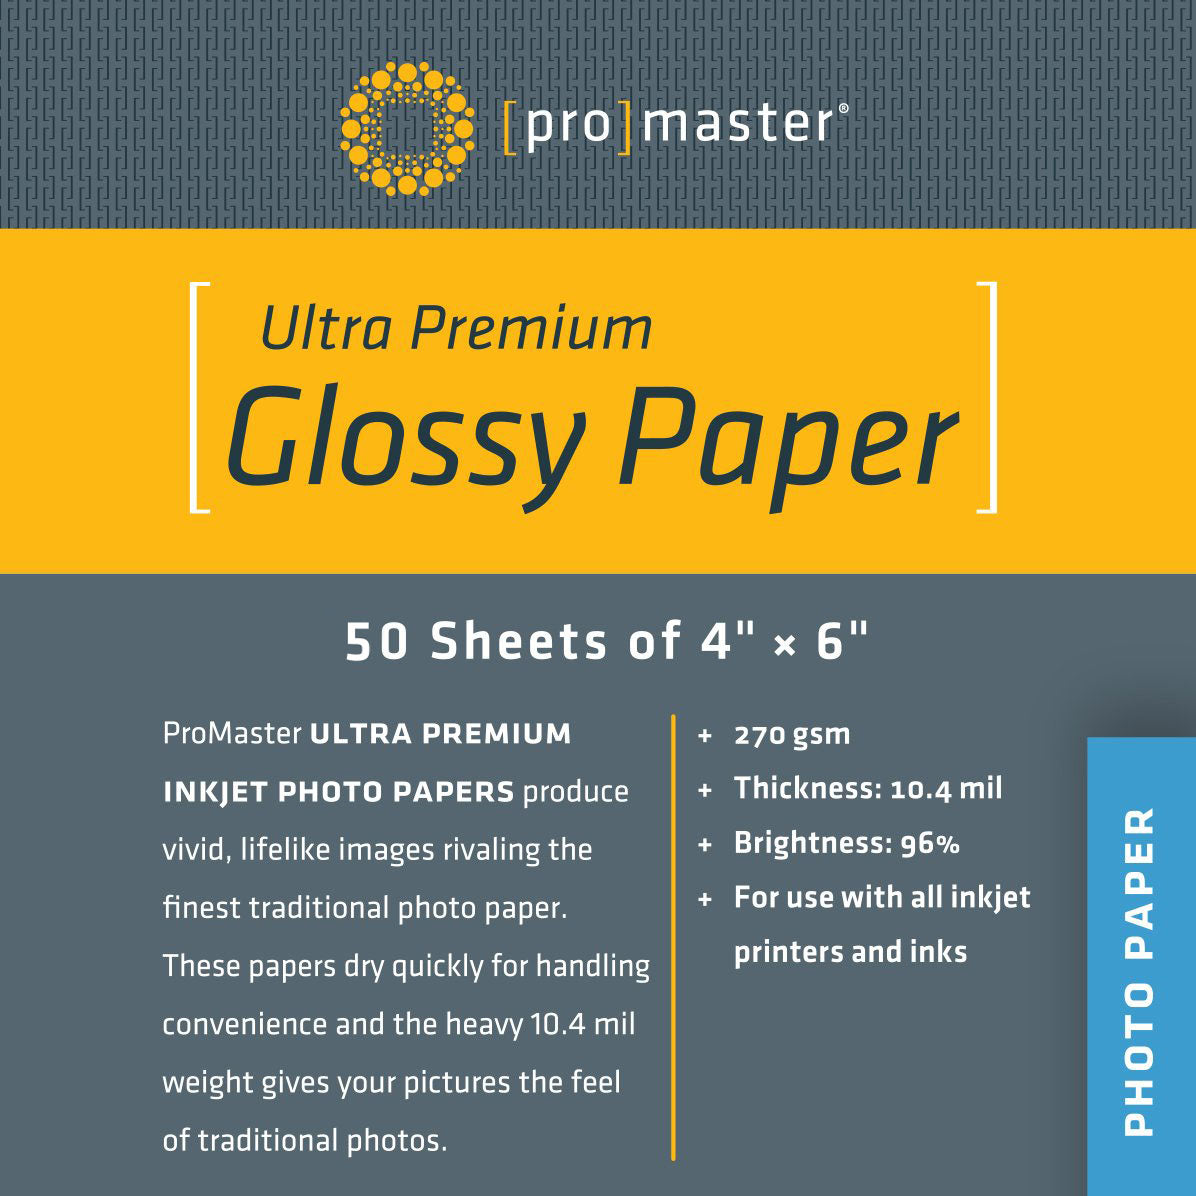 "ProMaster Ultra Premium Glossy Paper - 4""x6"" - 50 Sheets - Print-Scan-Present - ProMaster - Helix Camera"